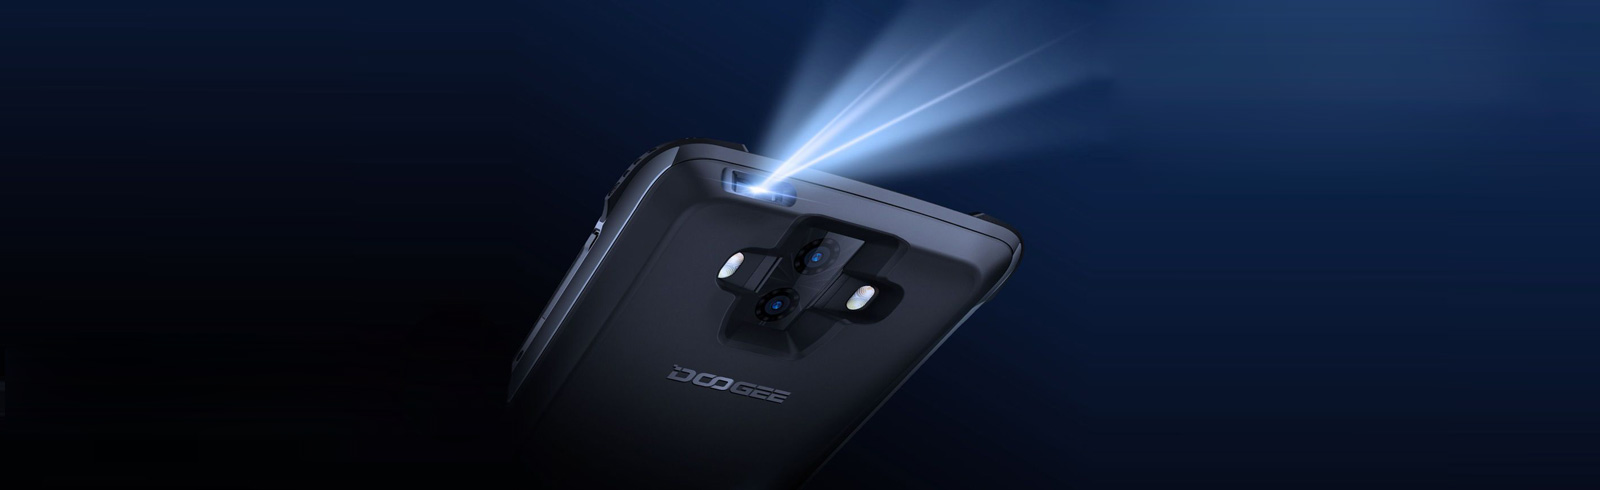 Doogee S90 to get a projector module and two other environmental ones